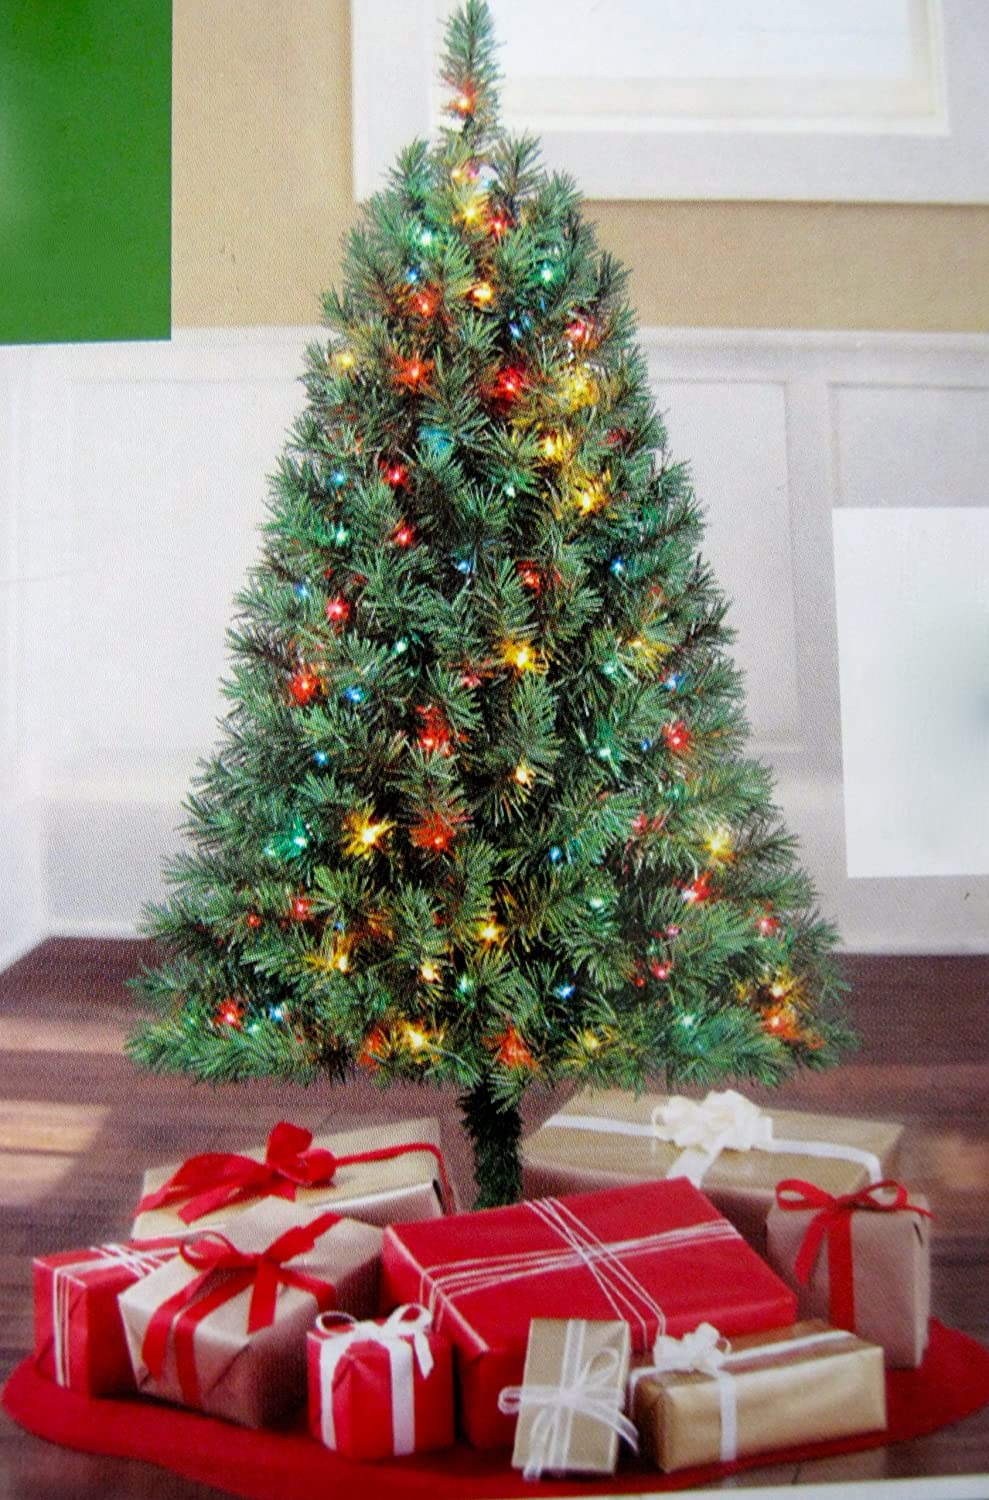 Amazon.com: Indiana Spruce Green 4 Ft Artificial Tree: Home & Kitchen